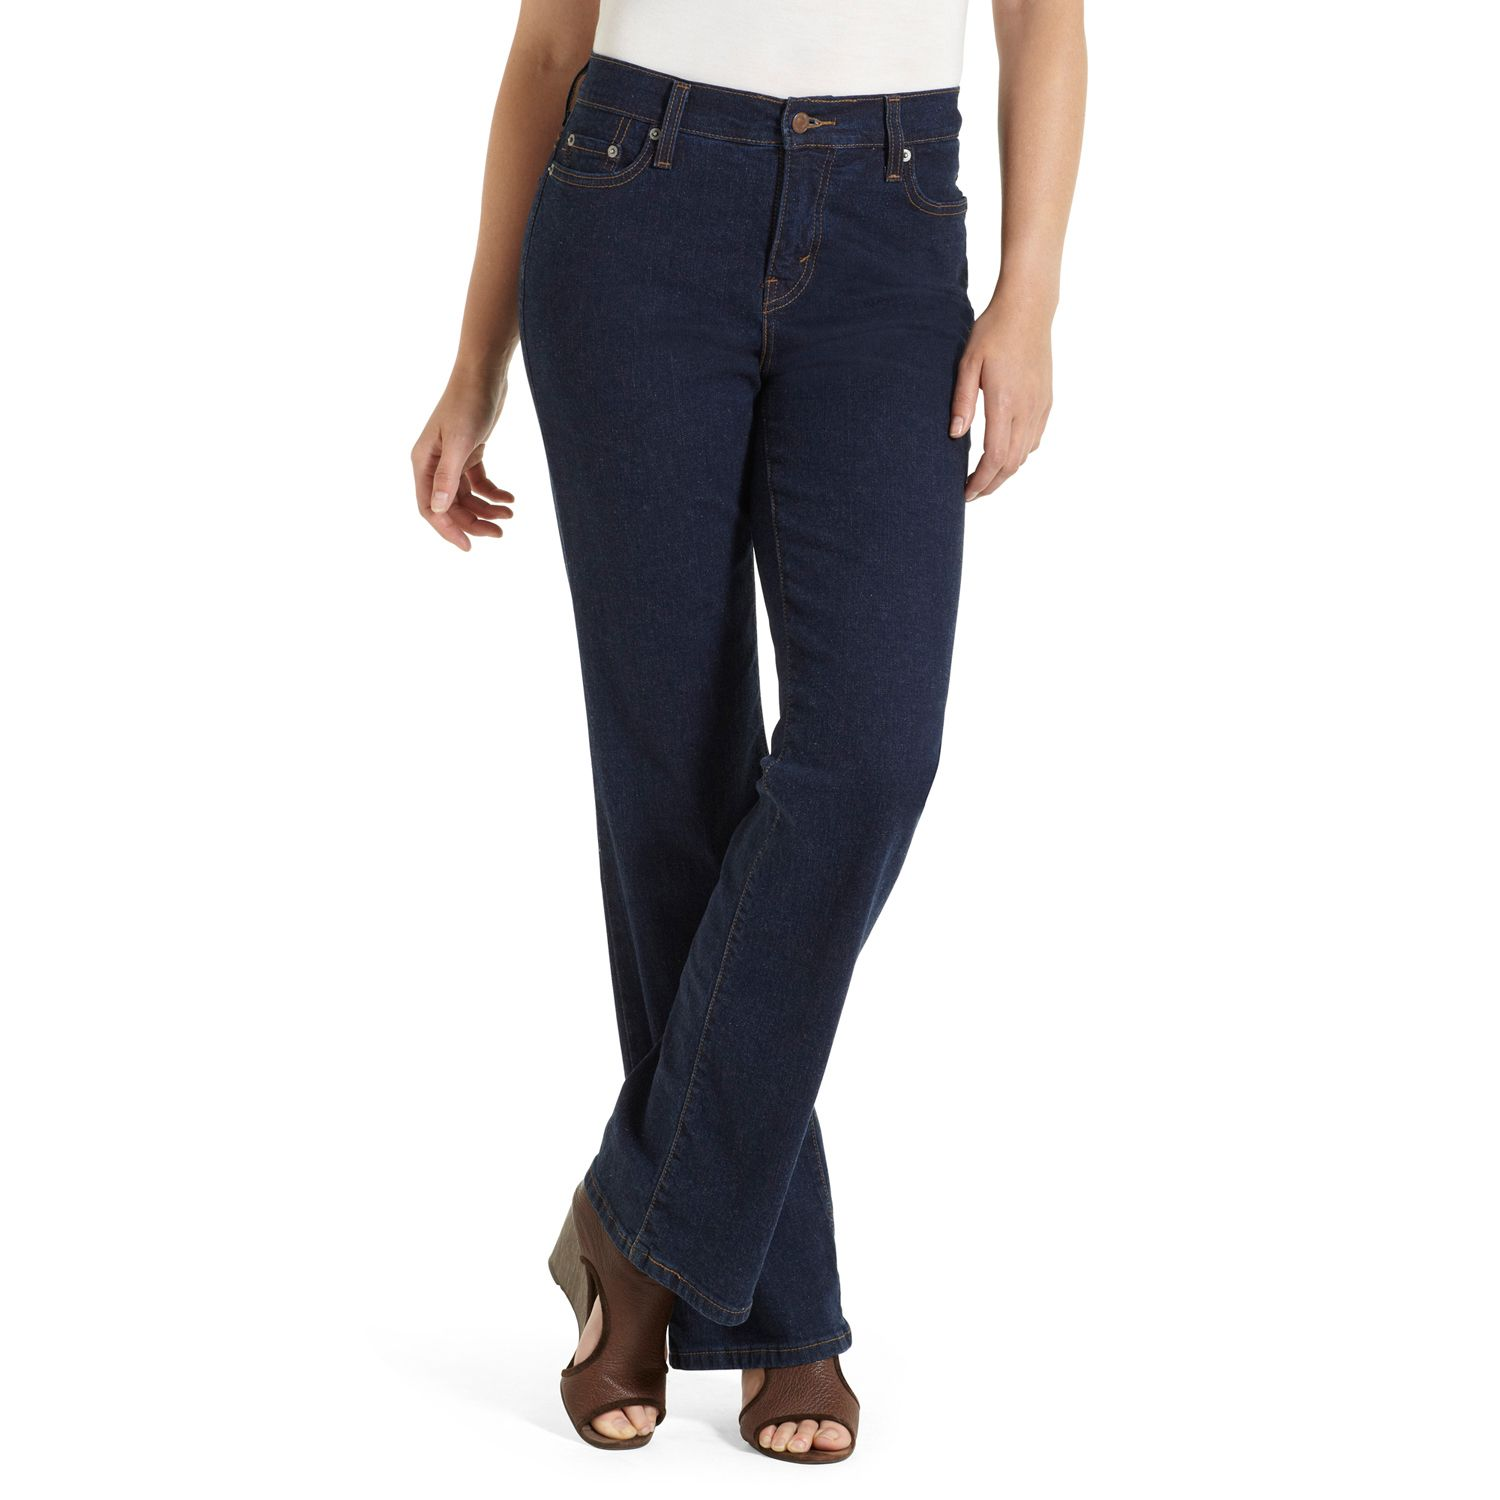 Womens Levis 512 Perfectly Slimming Bootcut Jeans